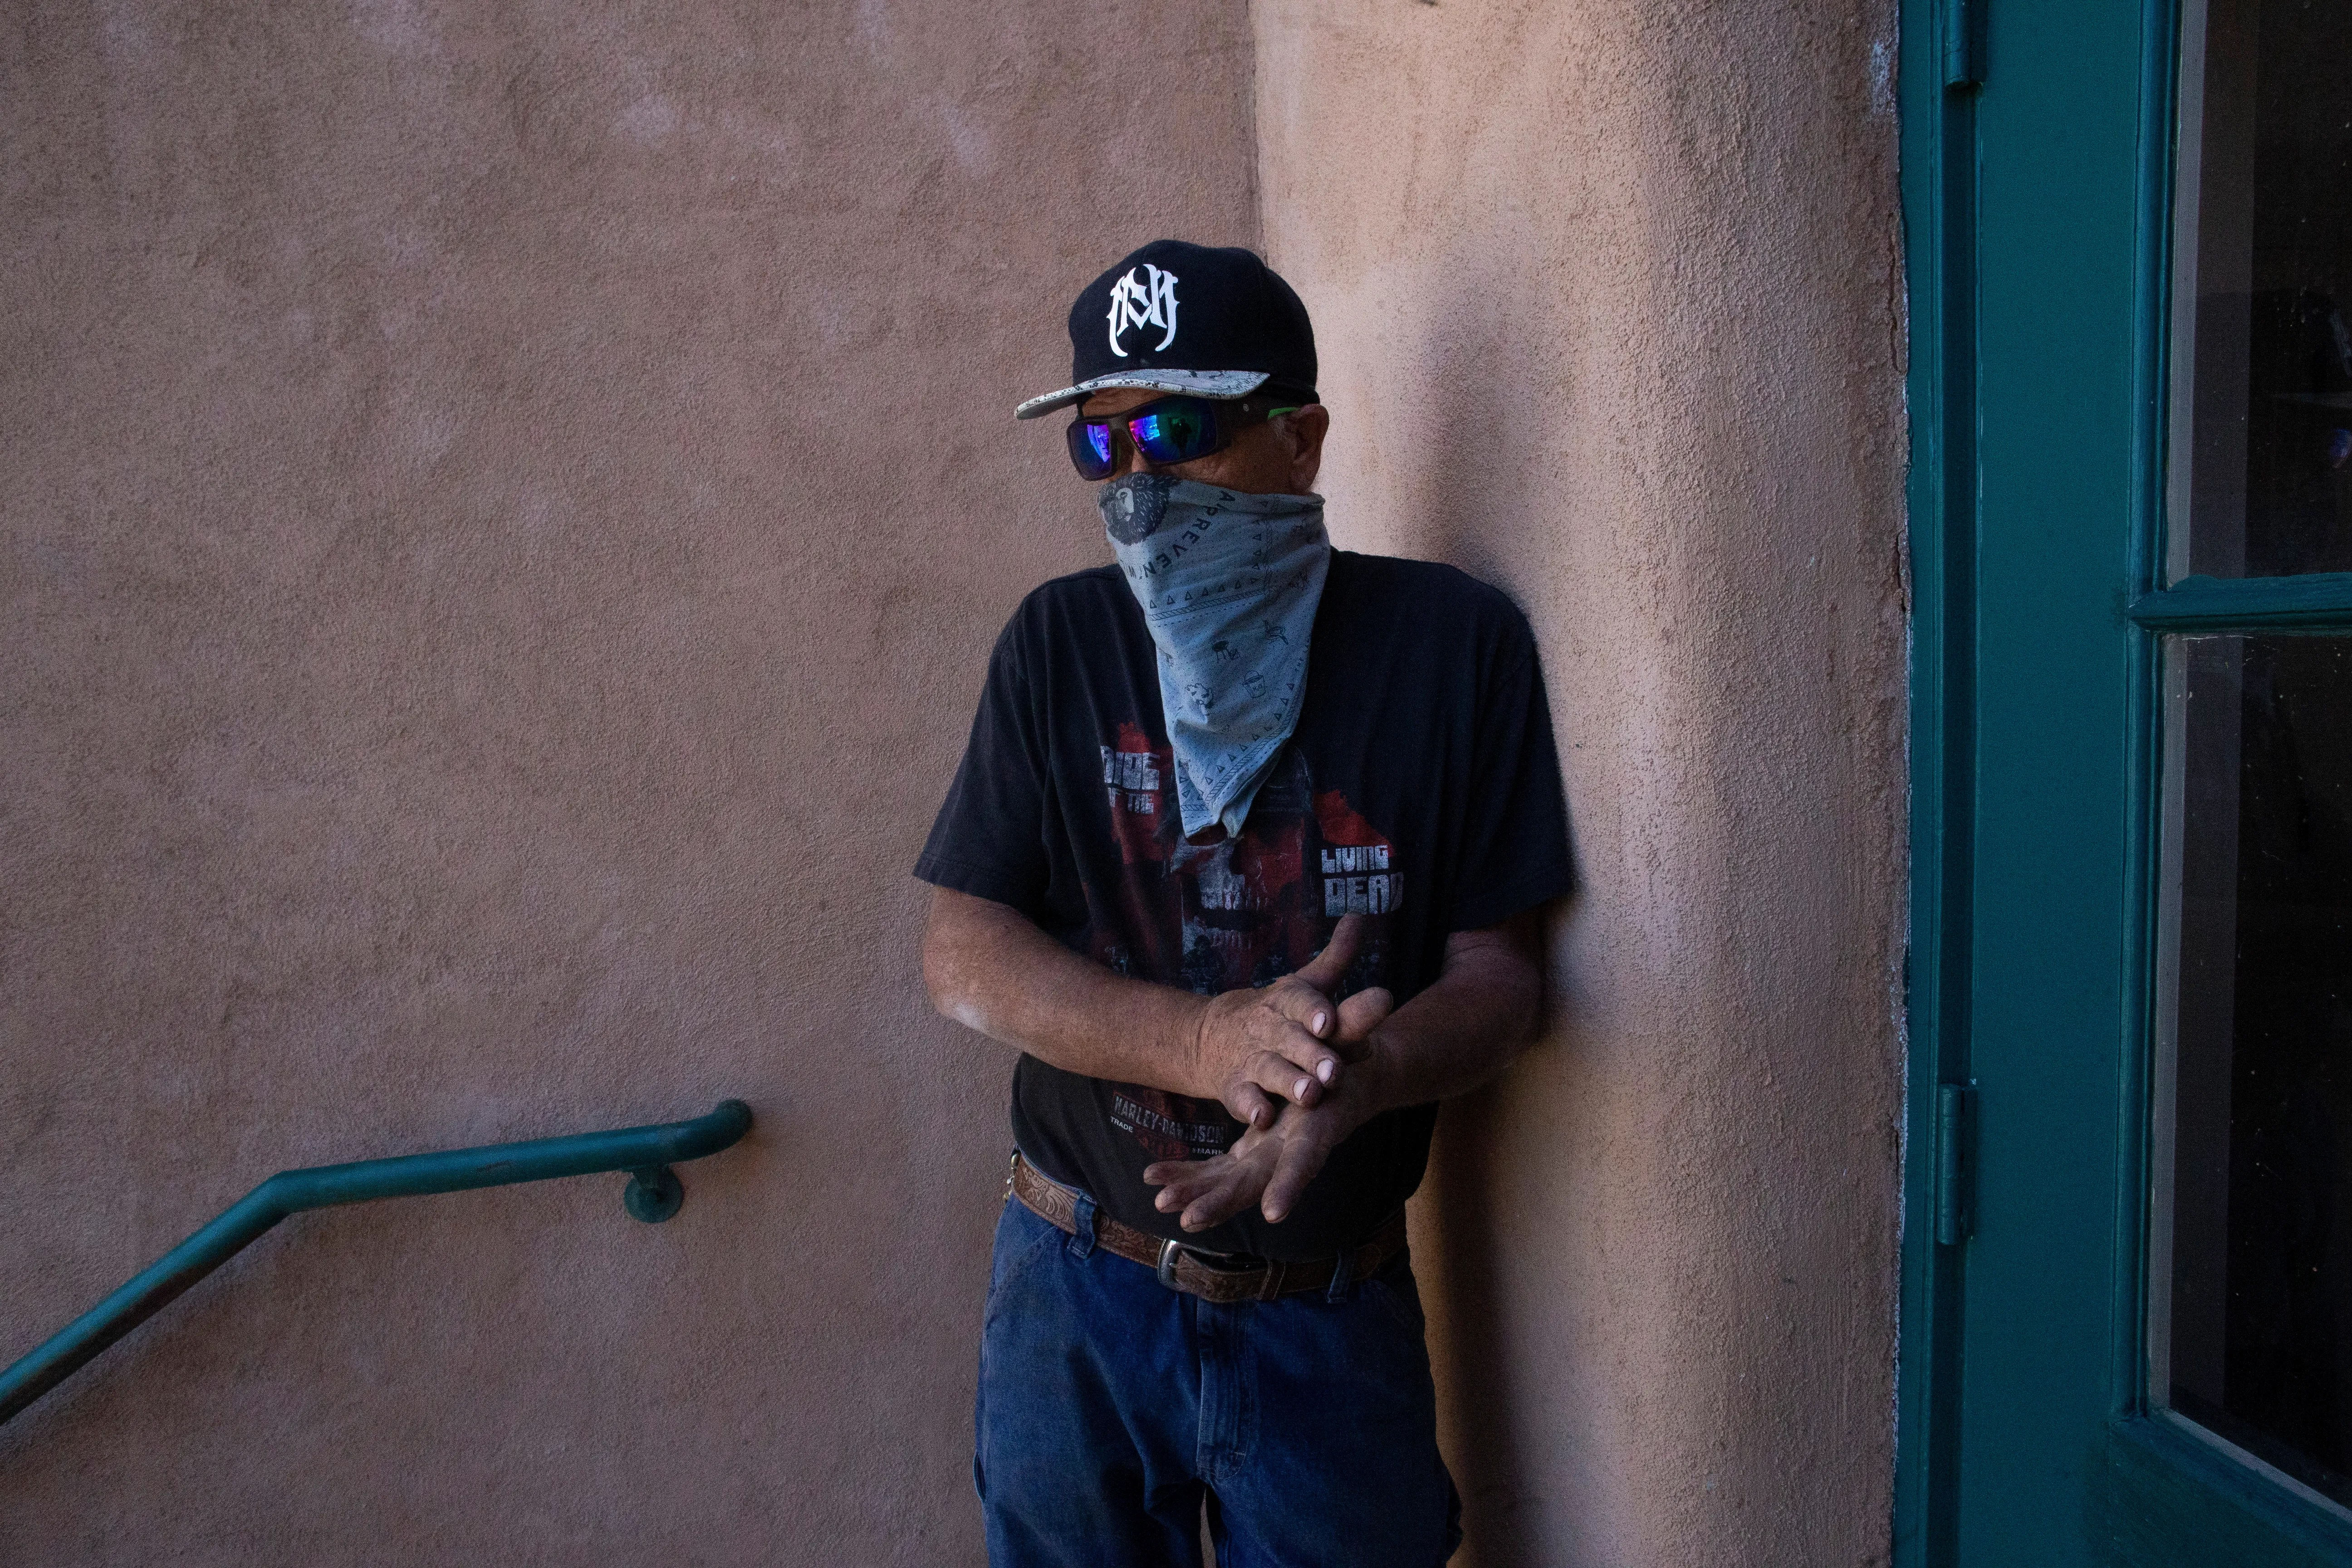 Timothy Dusharm begins to feel nervous as is the next in line to get the COVID-19 vaccination in Hillsboro, N.M.